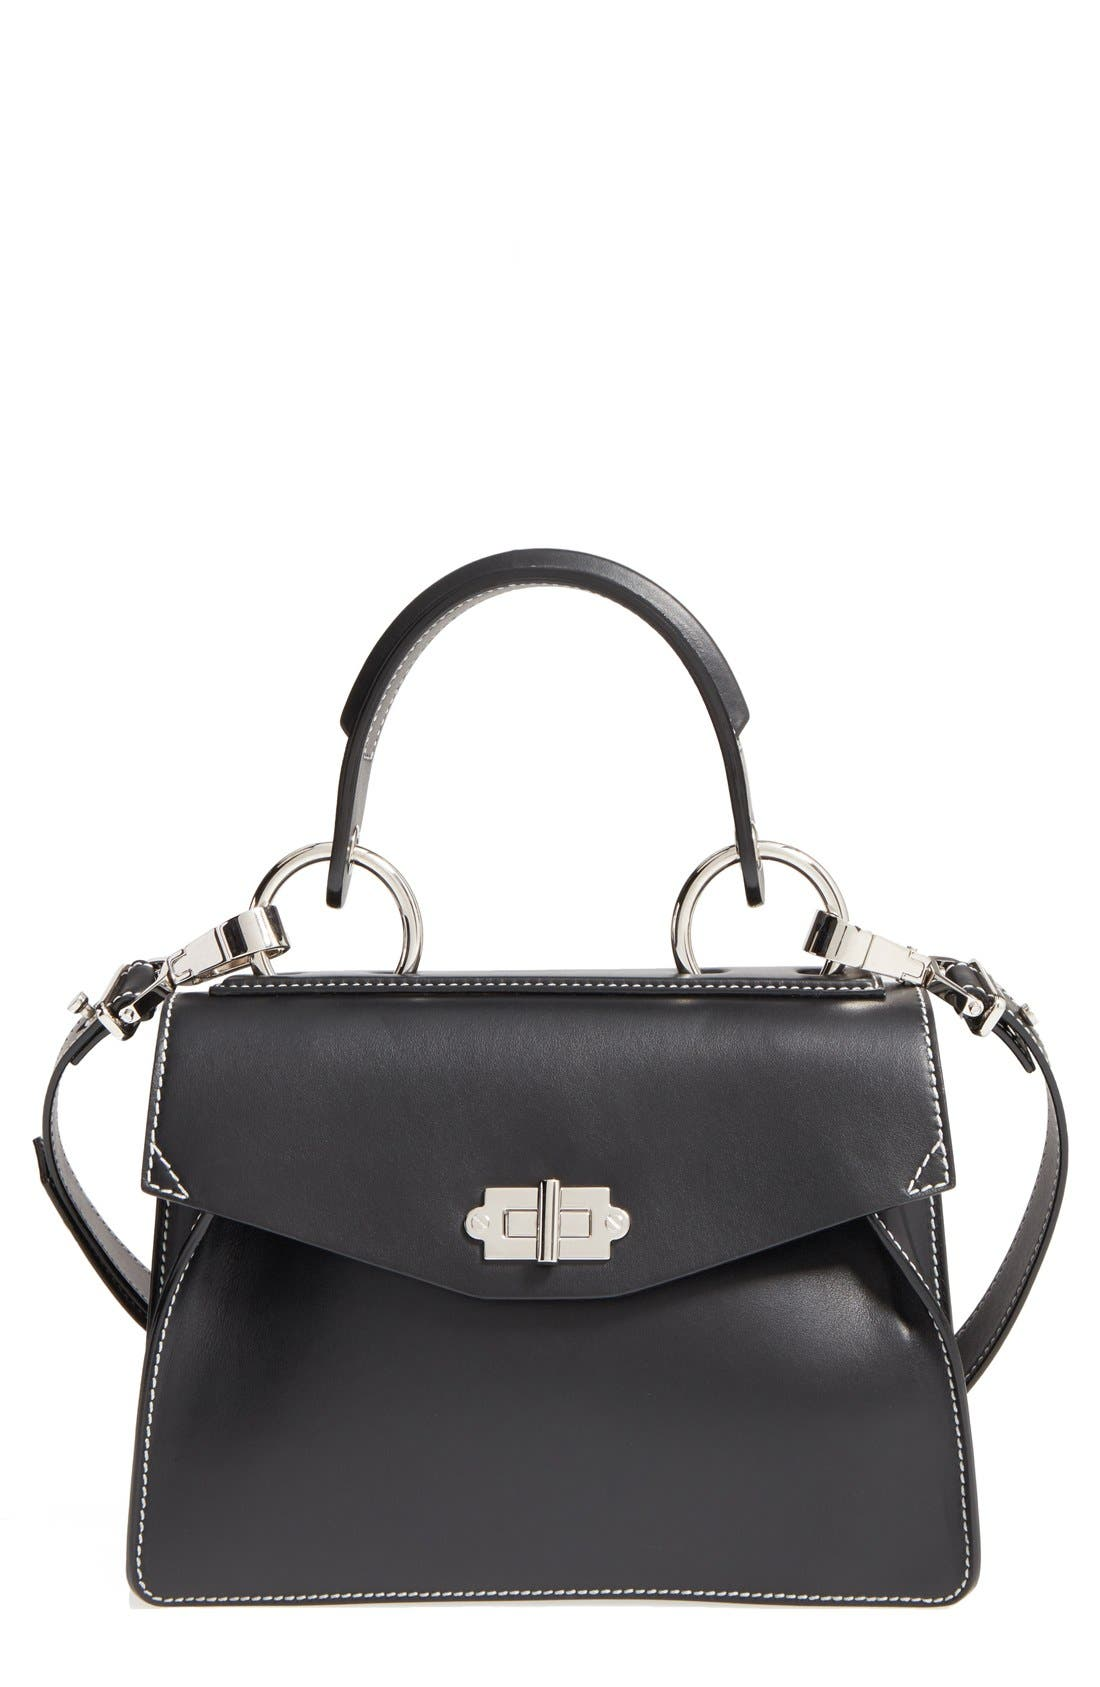 PROENZA SCHOULER 'Small Hava' Top Handle Calfskin Leather